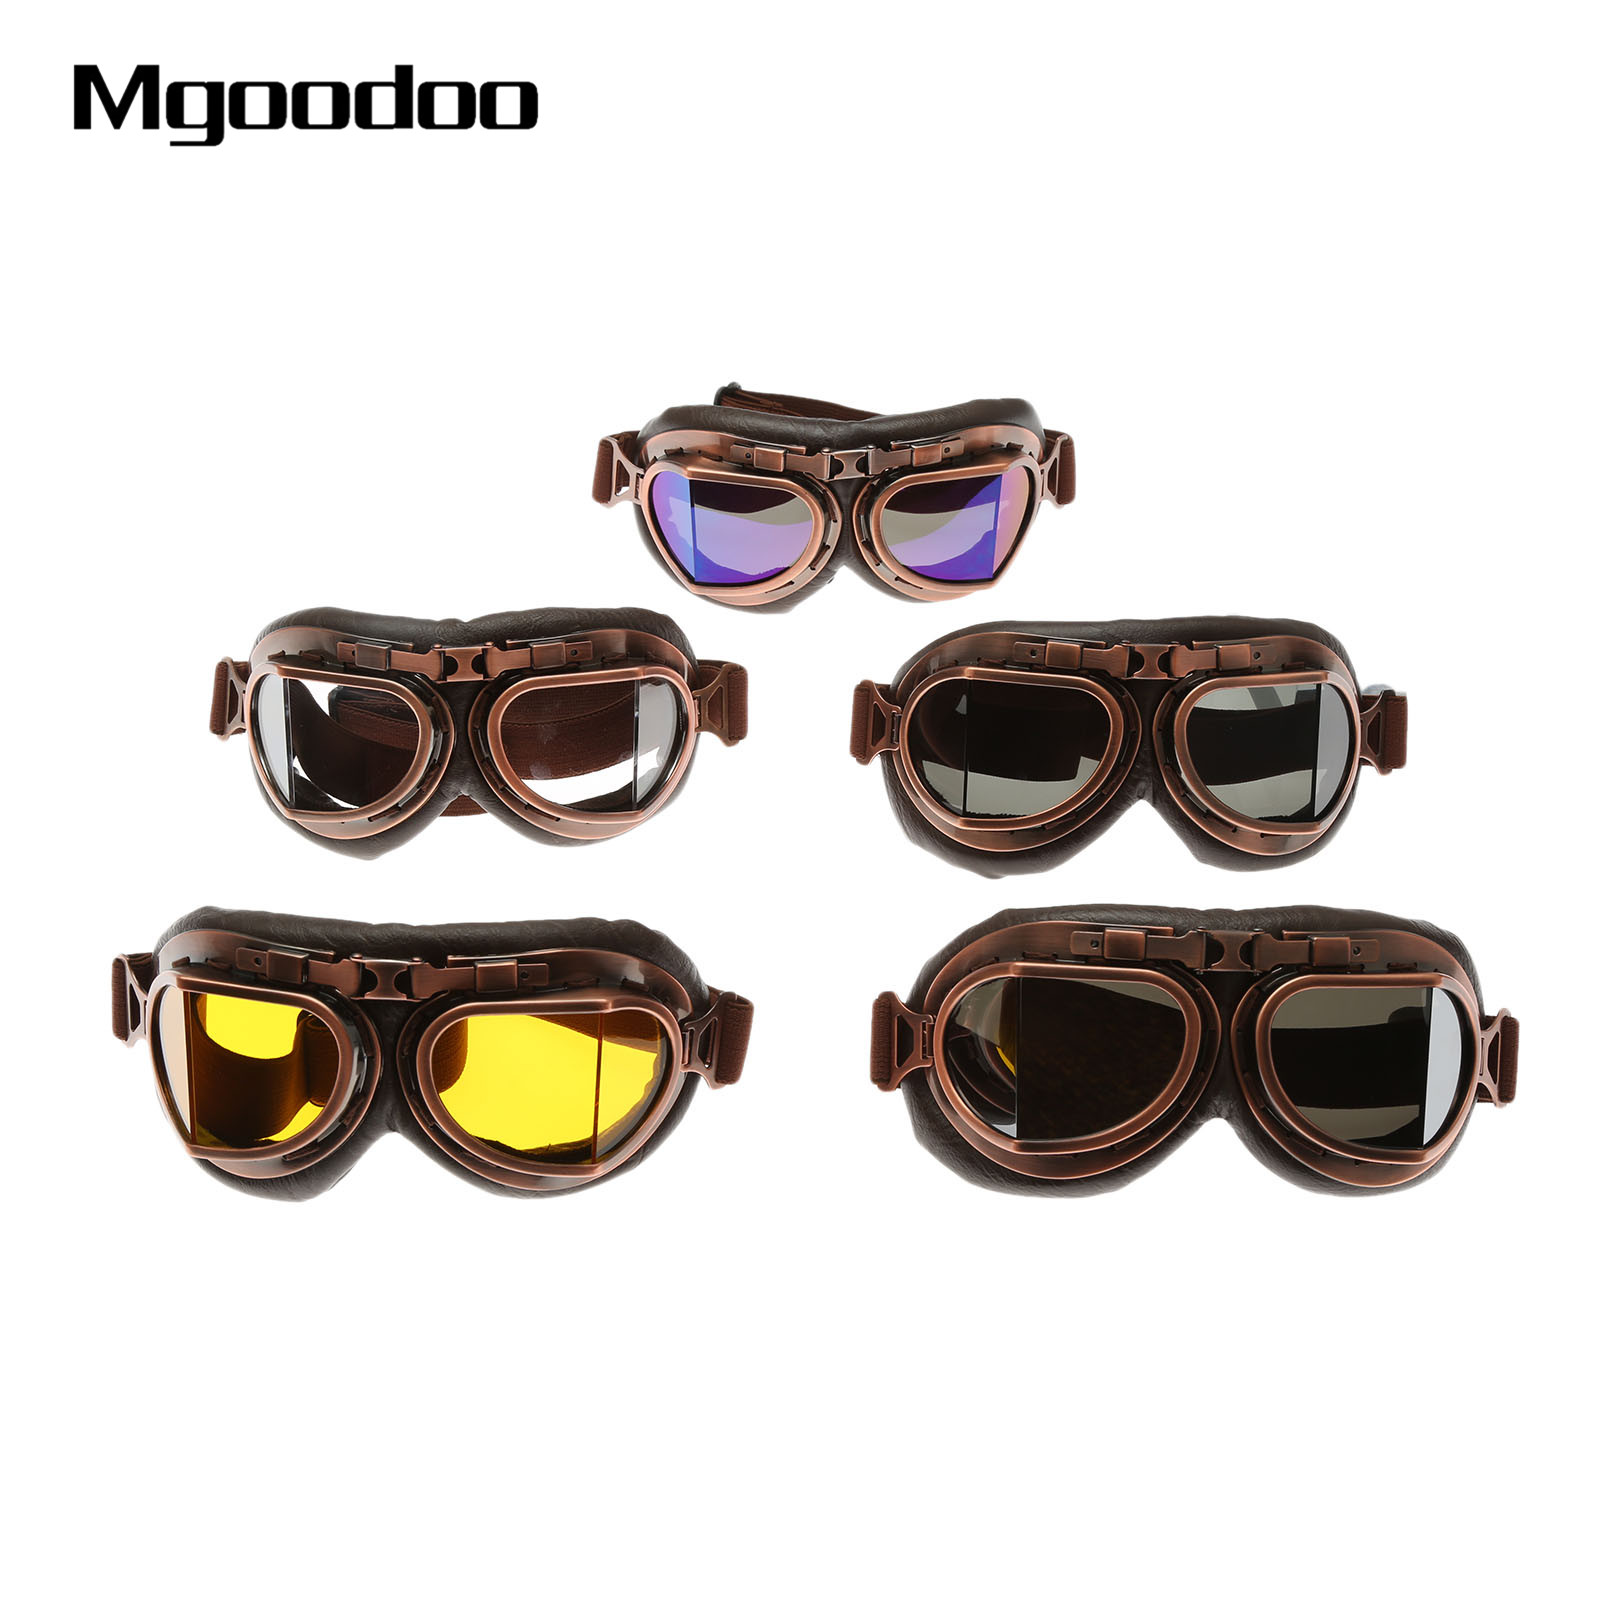 Motorcycle Goggles Glasses Vintage Motocross Eyewear Goggles Retro Aviator Pilot Steampunk ATV Bike UV Protection Gear Glasses